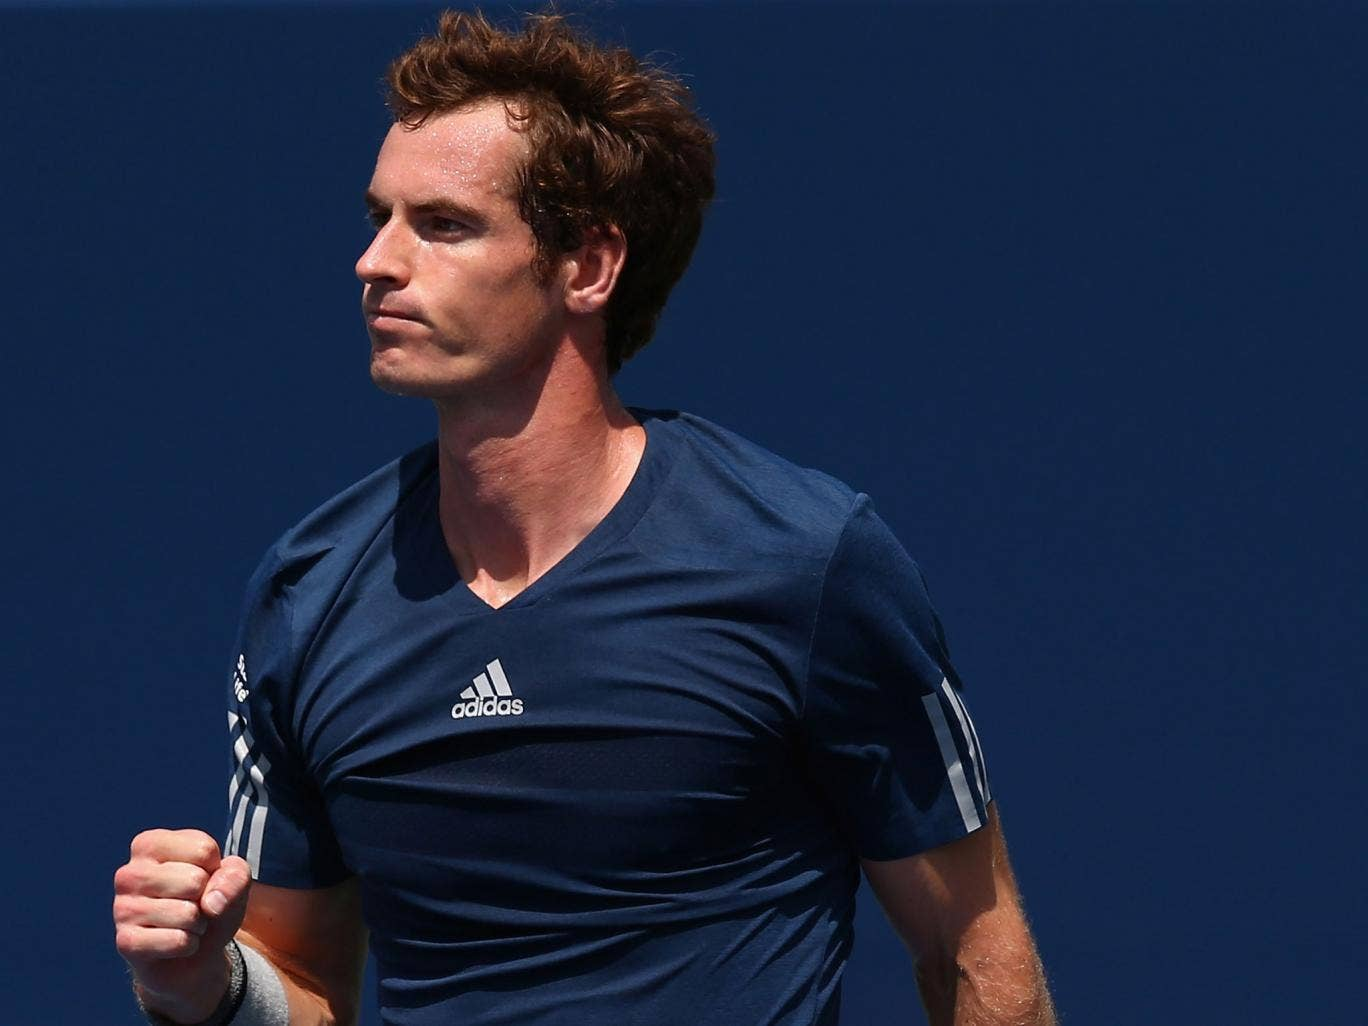 Andy Murray celebrates his victory over Nick Kyrgios in the Rogers Cup in Toronto